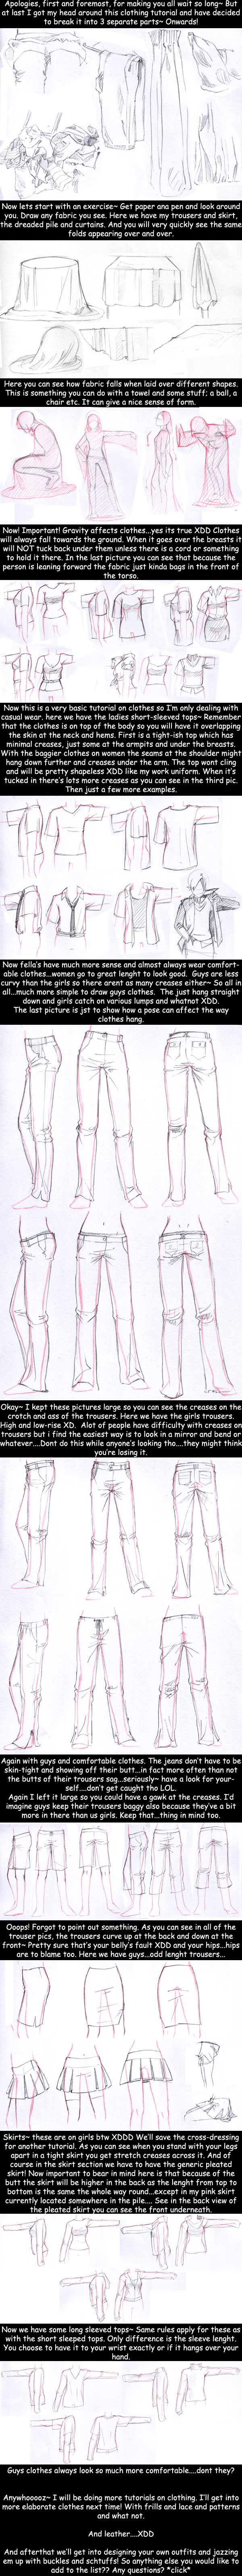 Tutorial: Clothes and Folds